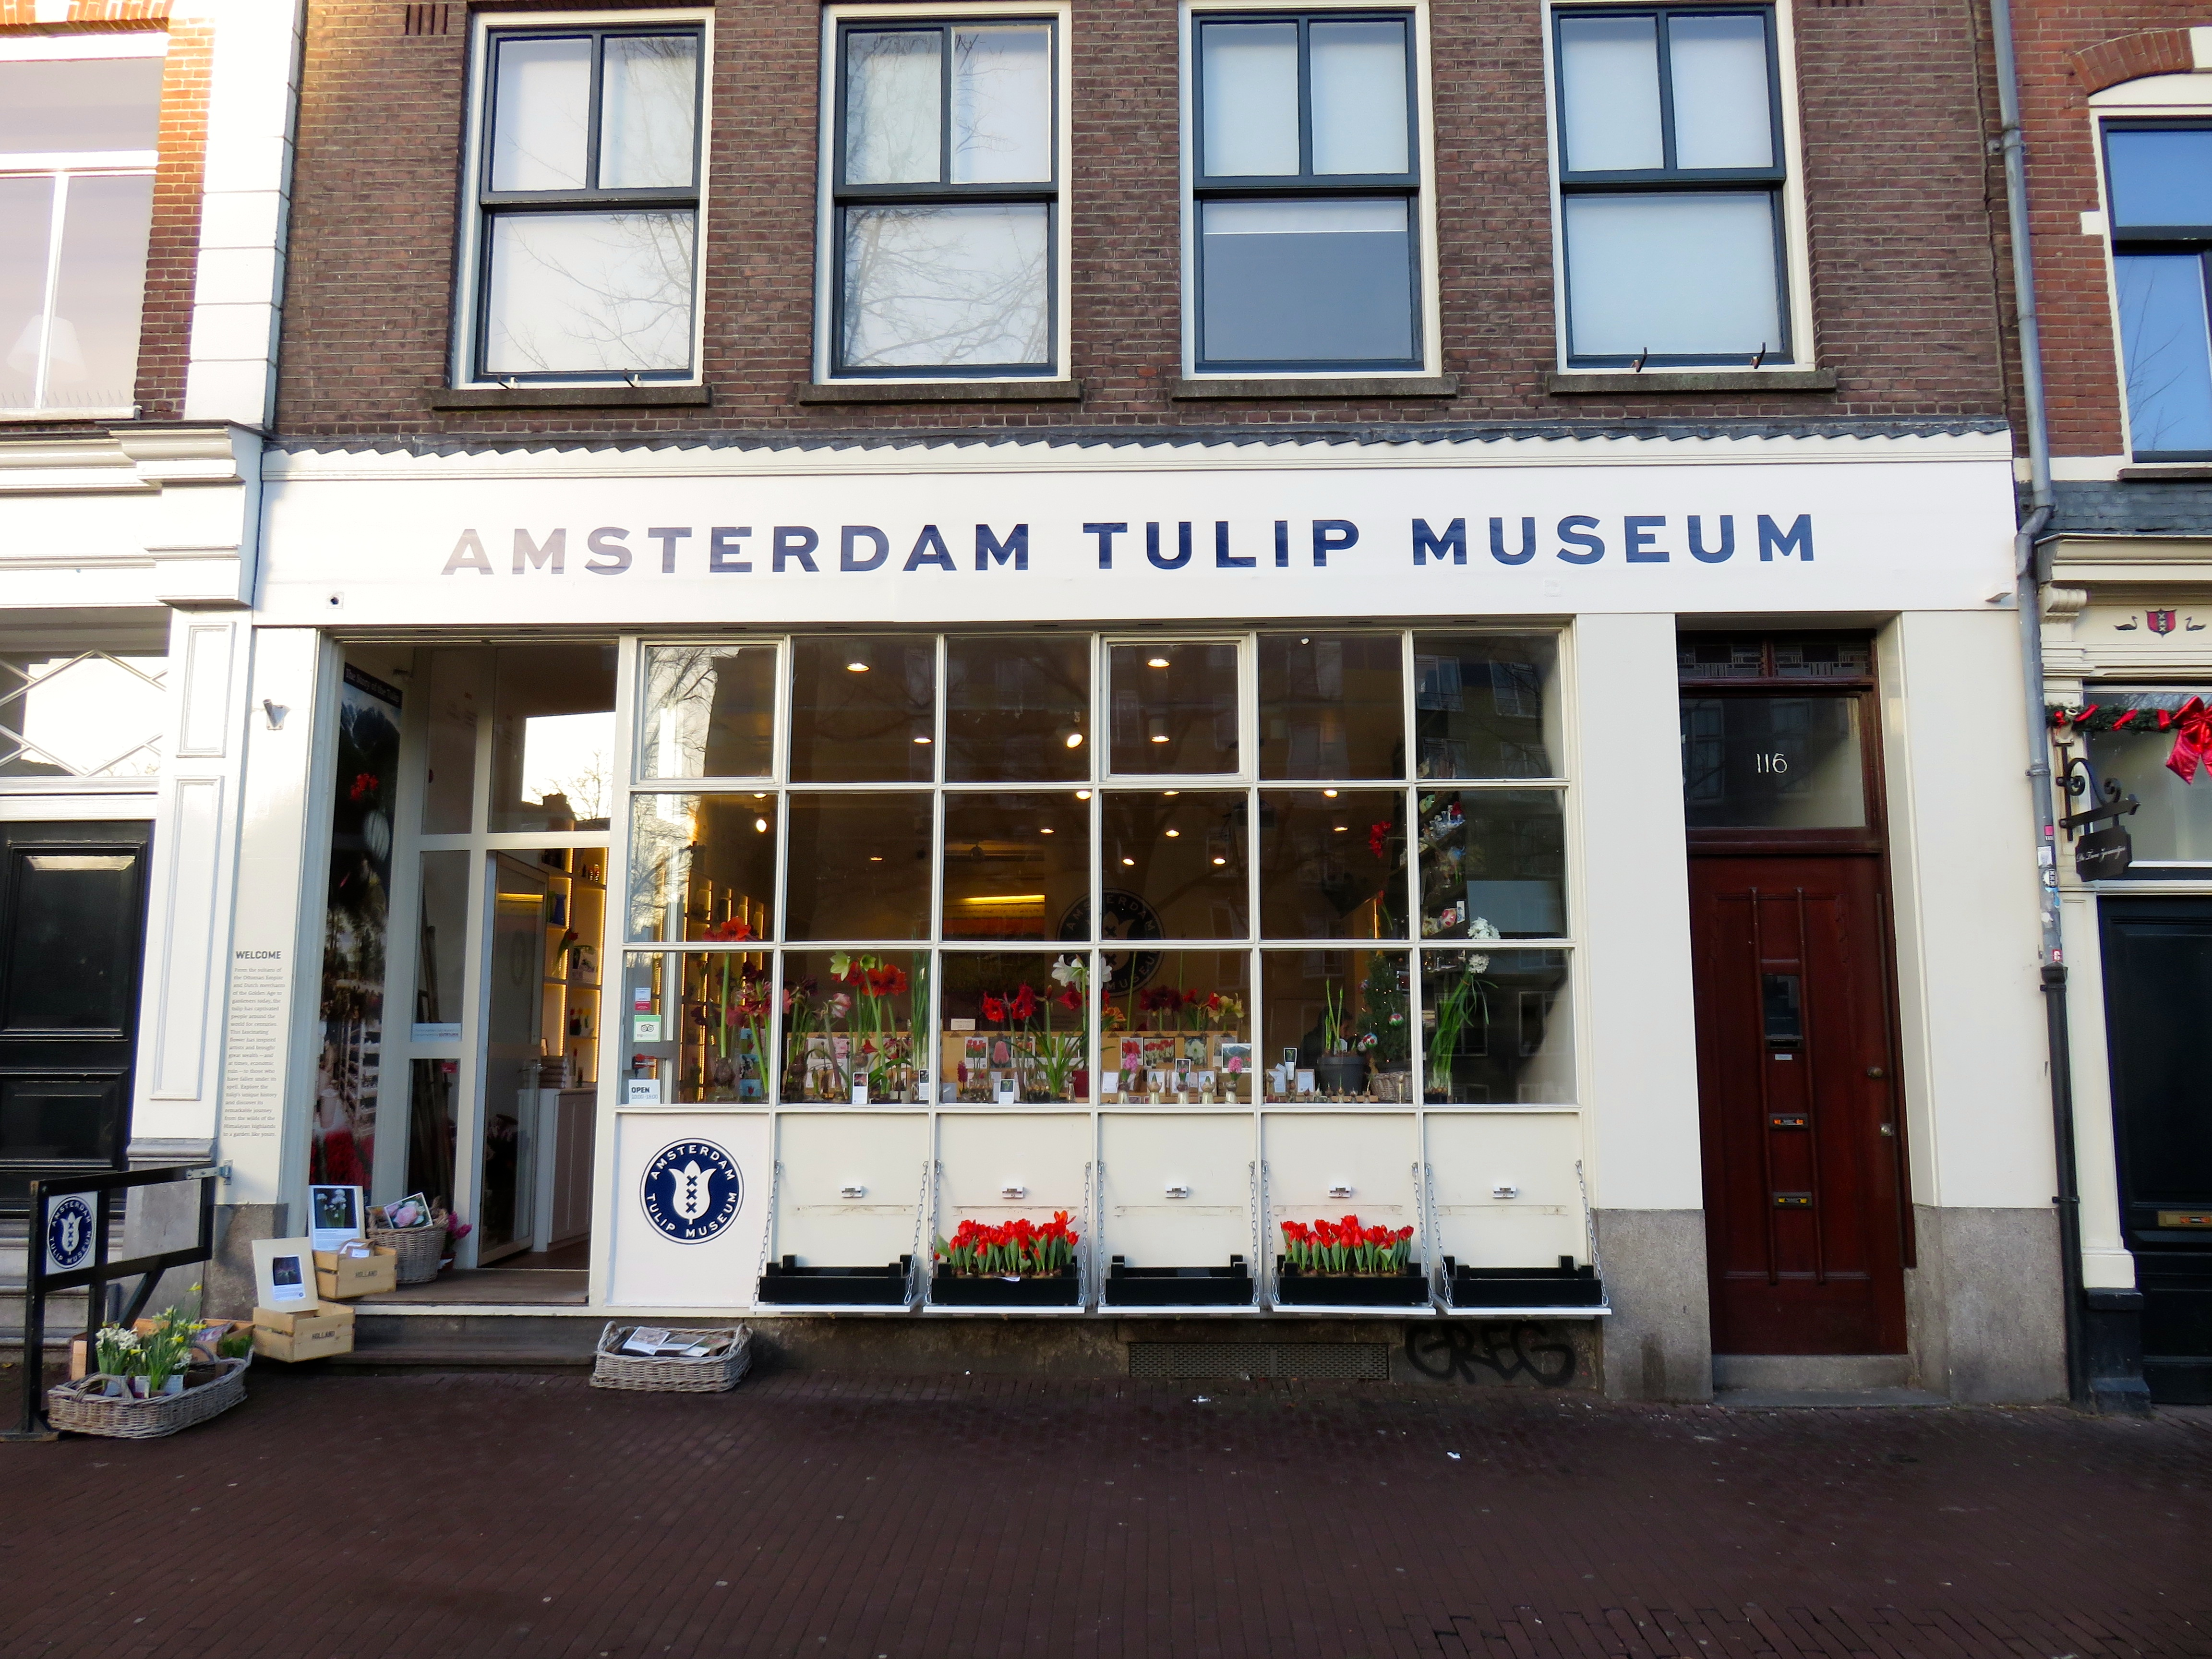 essay about amsterdam Amsterdam summary & study guide includes detailed chapter summaries and analysis, quotes, character descriptions, themes, and more.